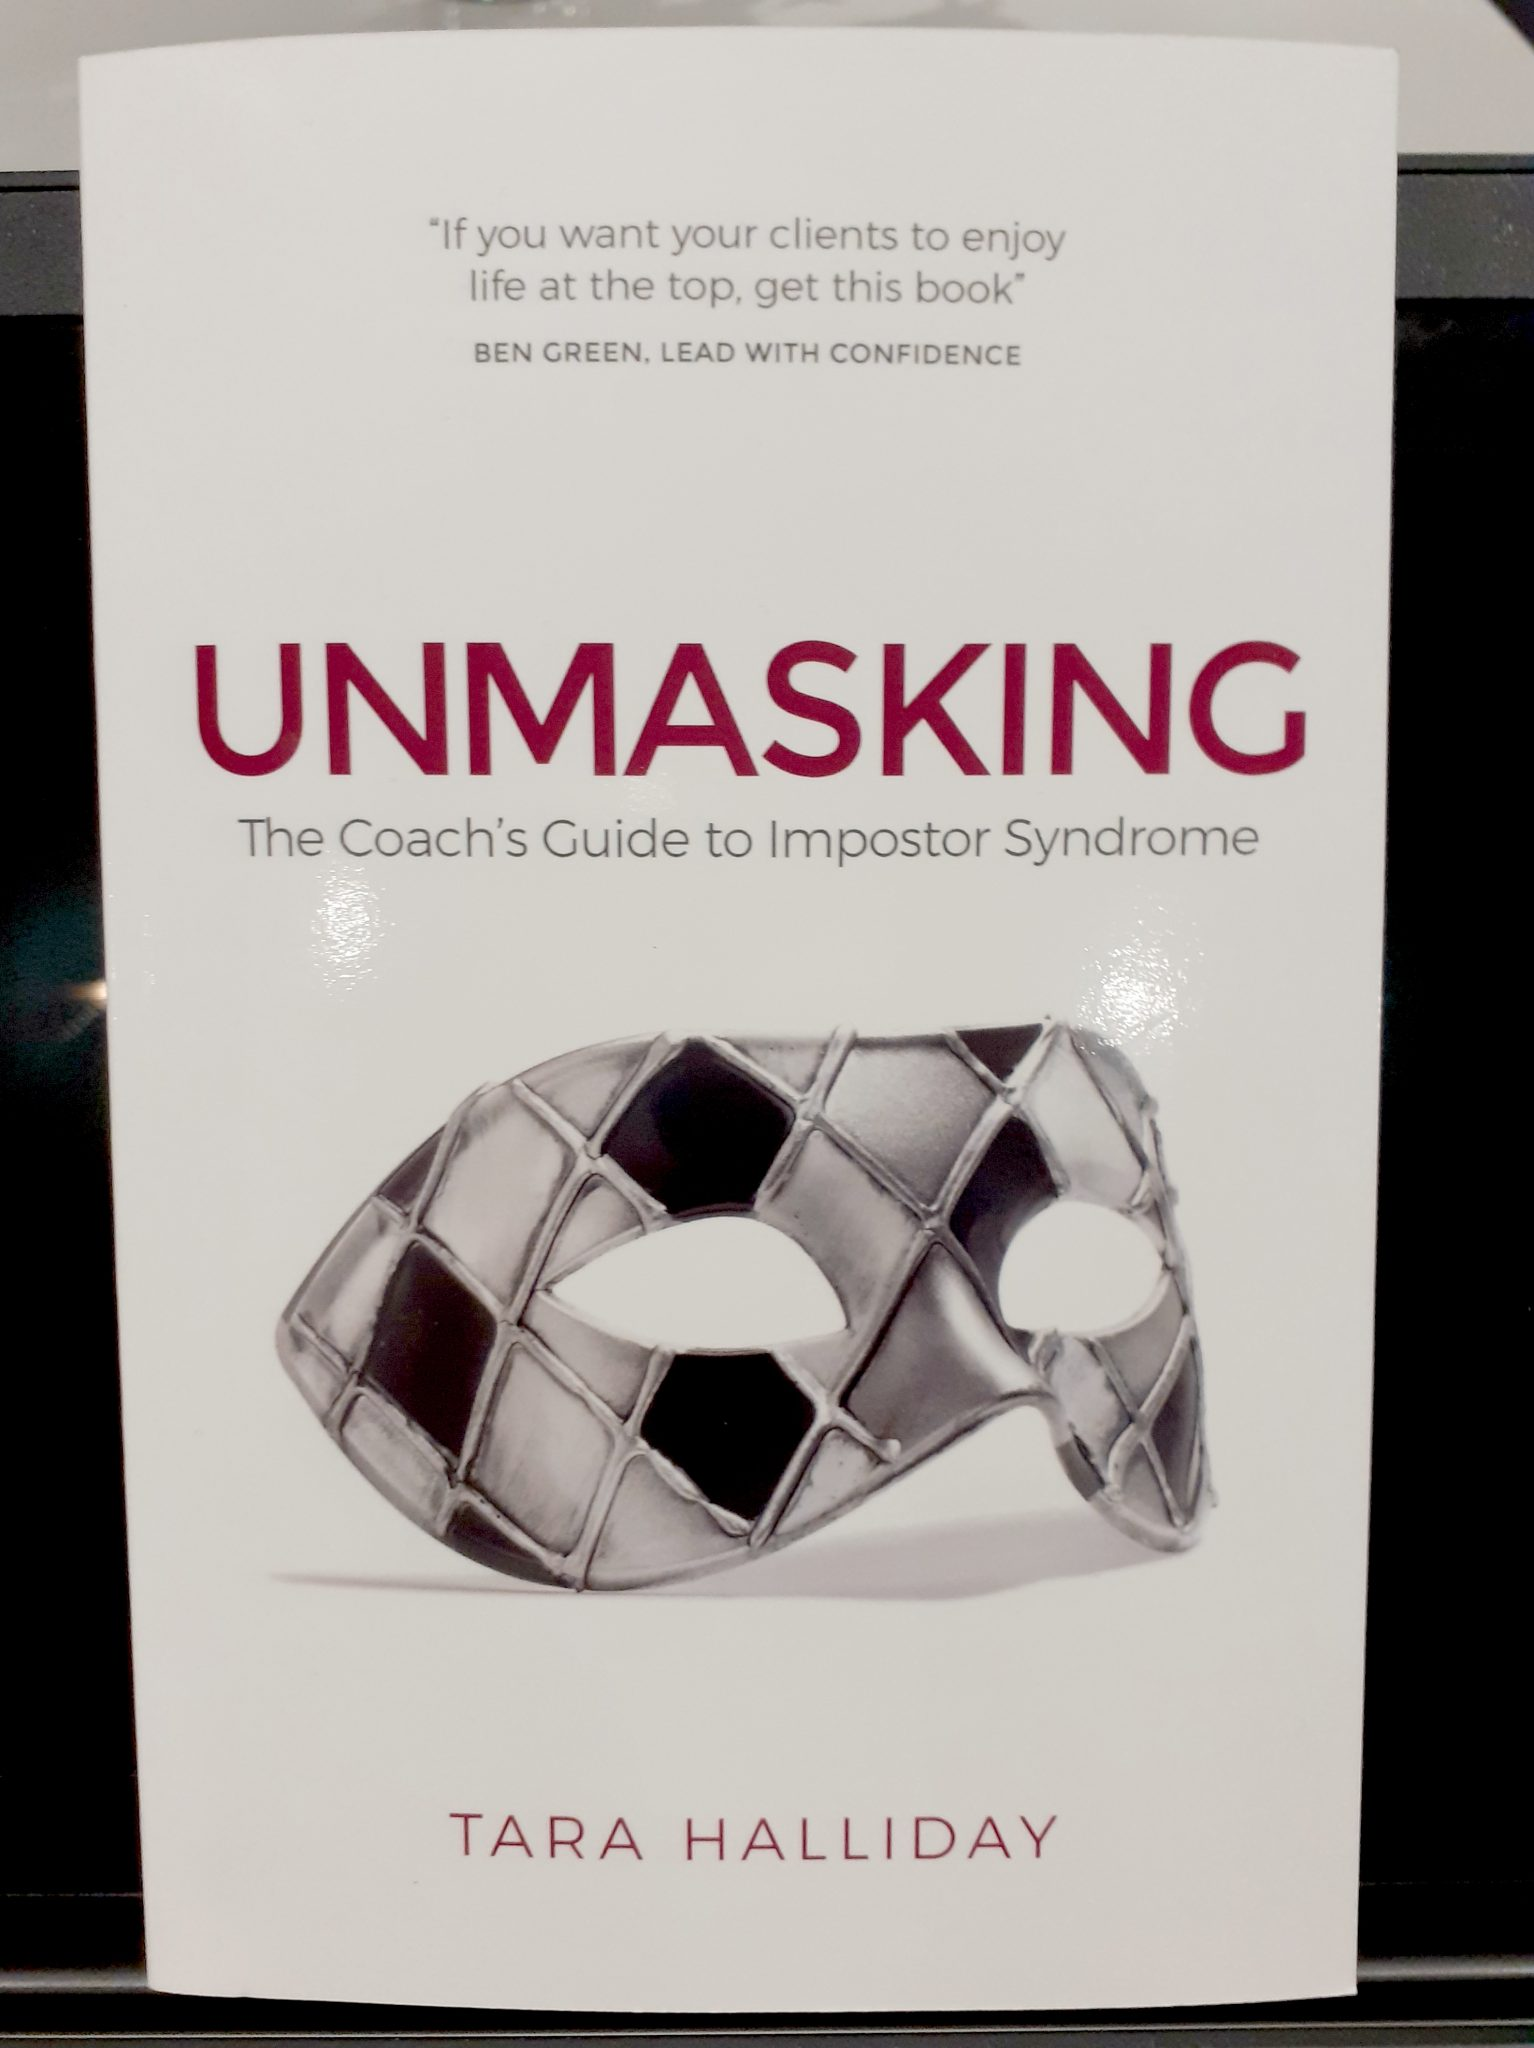 Unmasking The Coach's Guide to Impostor Syndrome by Tara Halliday